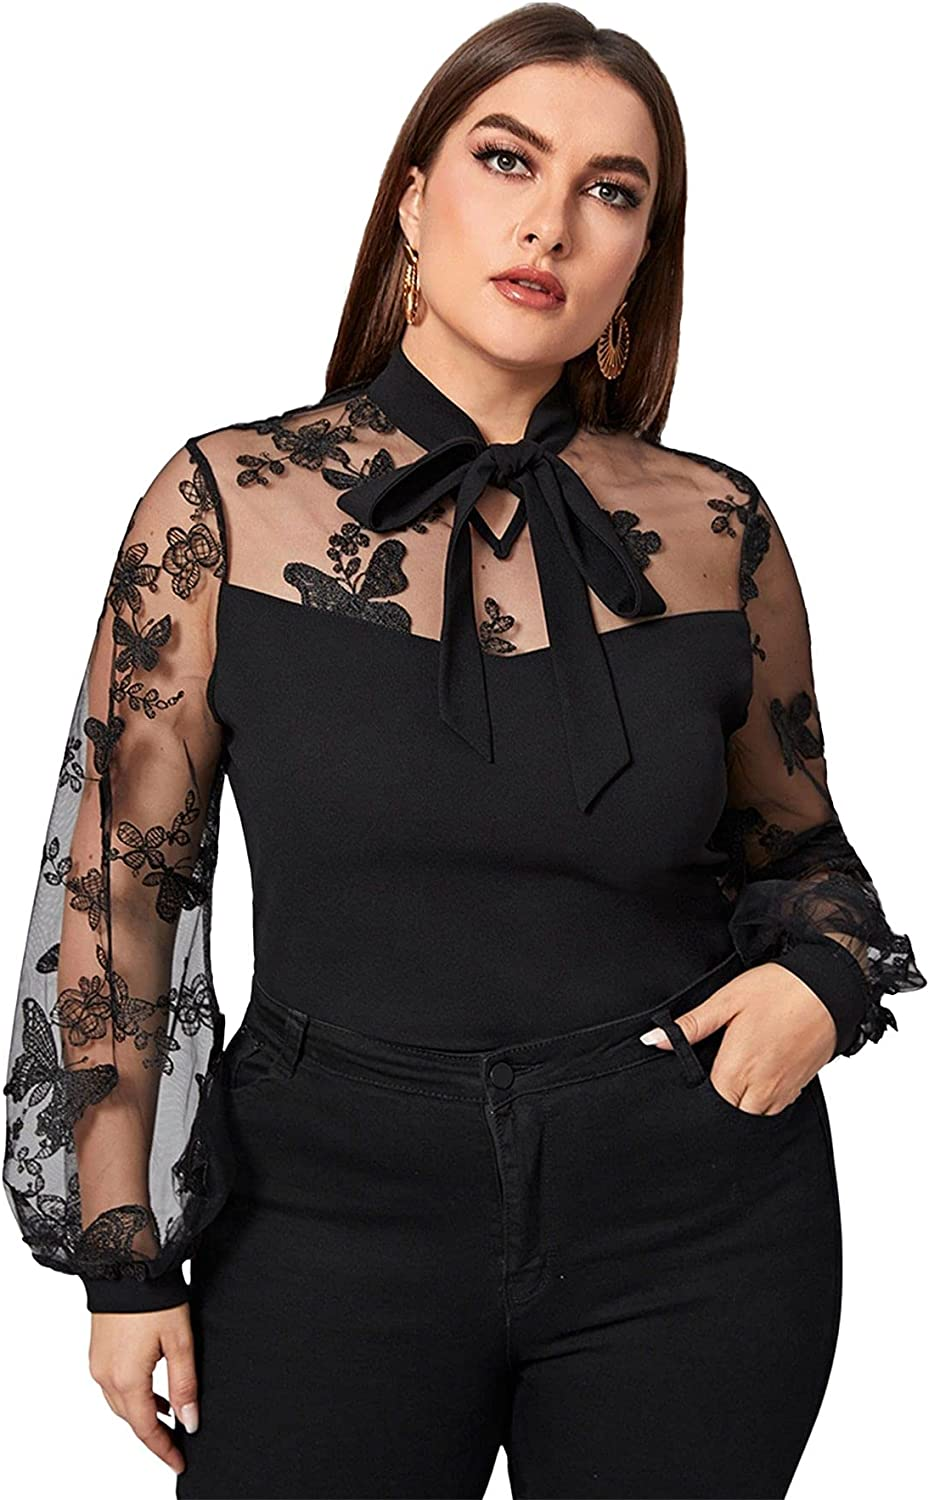 SheIn Women's Plus Embroidered Sheer Mesh Tie Neck Blouse Bishop Long Sleeve Top